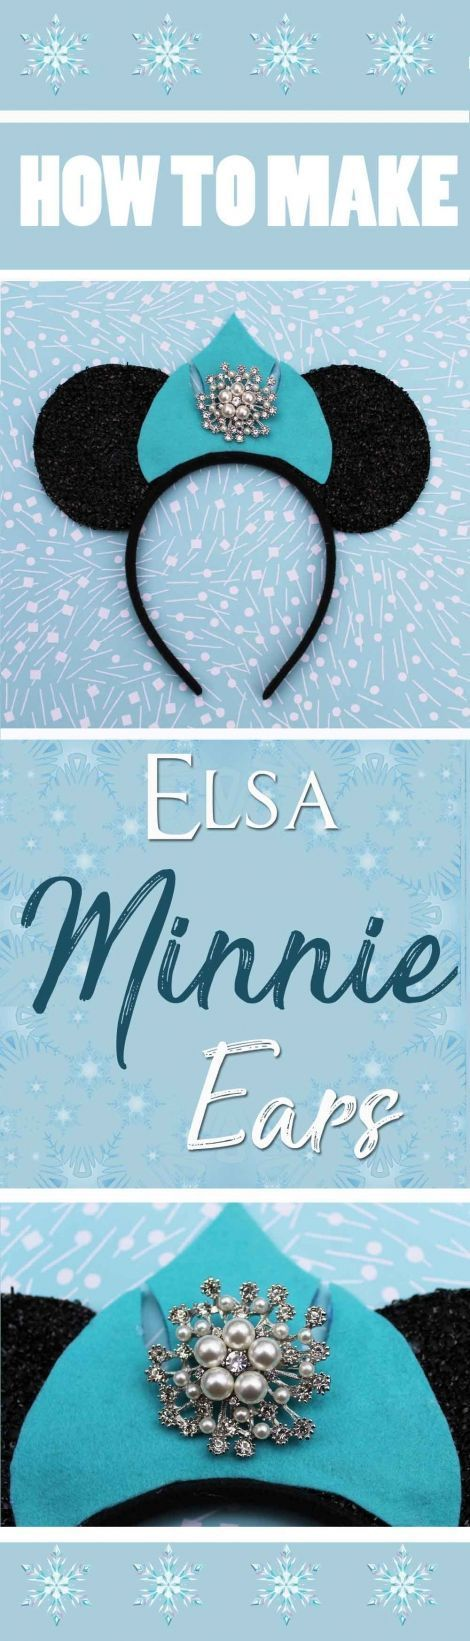 How to make your own custom DIY Frozen inspired Elsa Minnie ears. A step by step guide to crafting your own set of sparkly Queen Elsa crown ears.  Perfect for the Disney parks or for a Queen Elsa costume.    A fab headband for a Frozen inspired cosplay fa